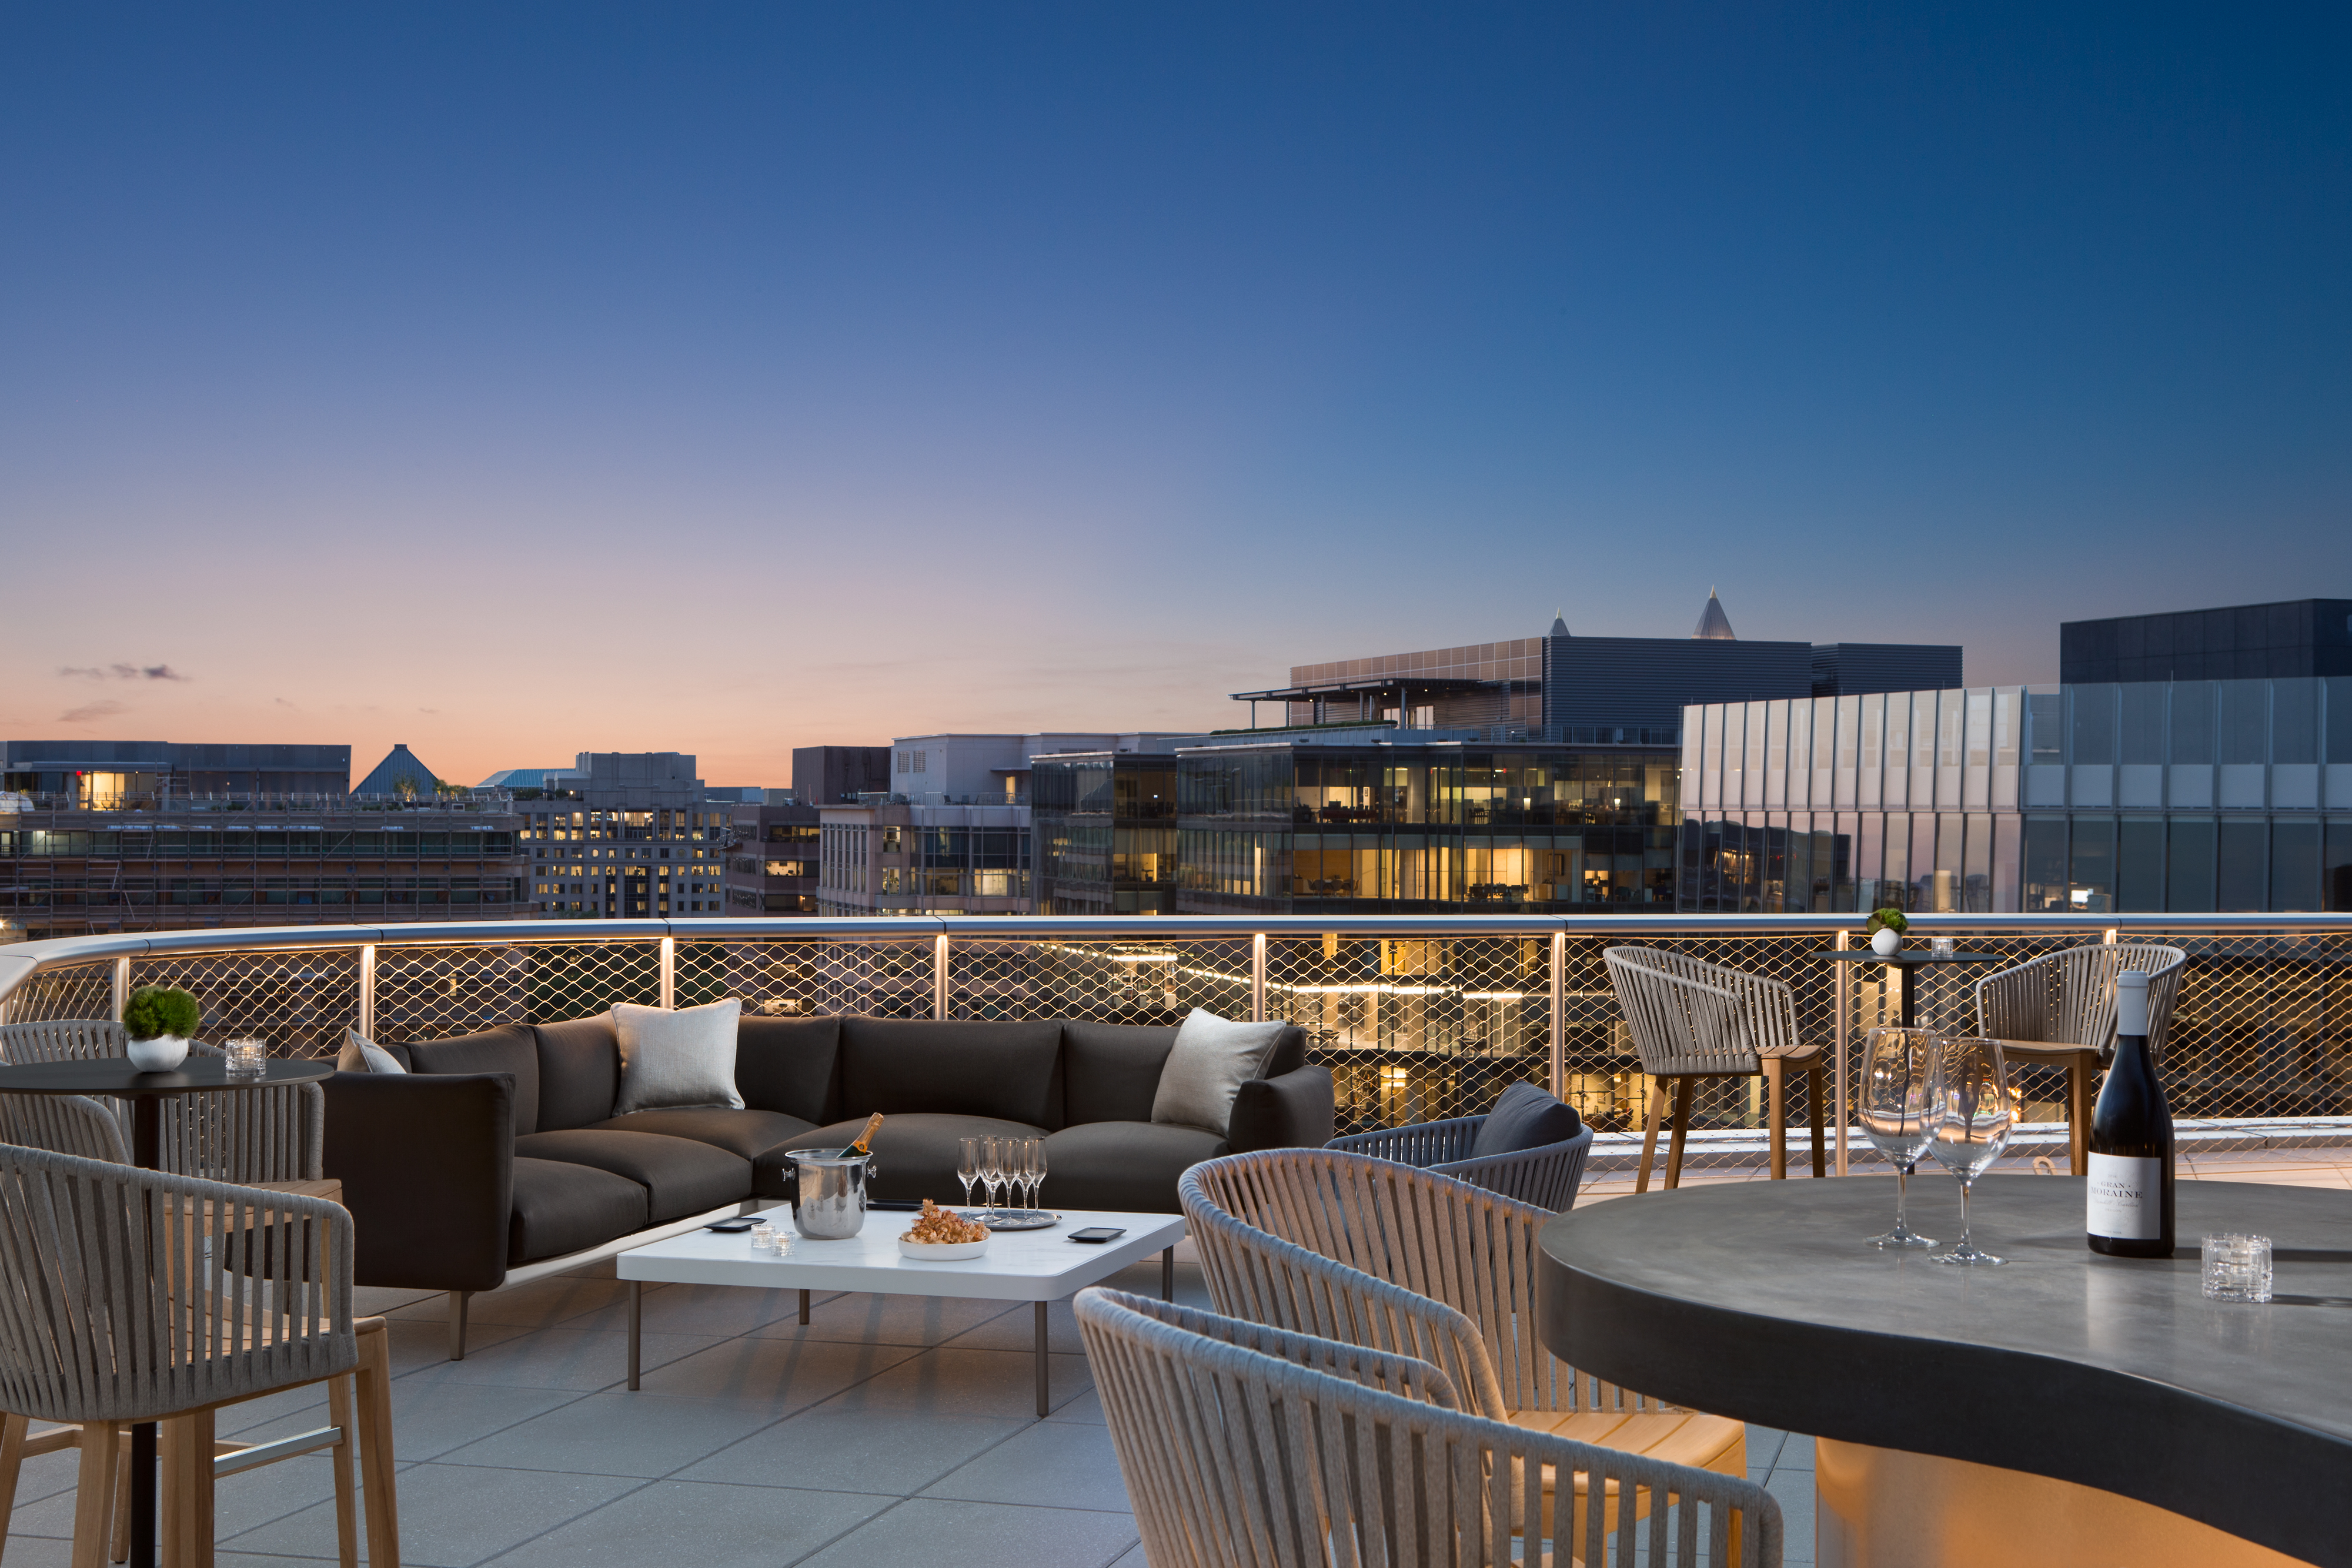 CityCenter's Swanky New Hotel Opens a Rooftop Bar Next Week